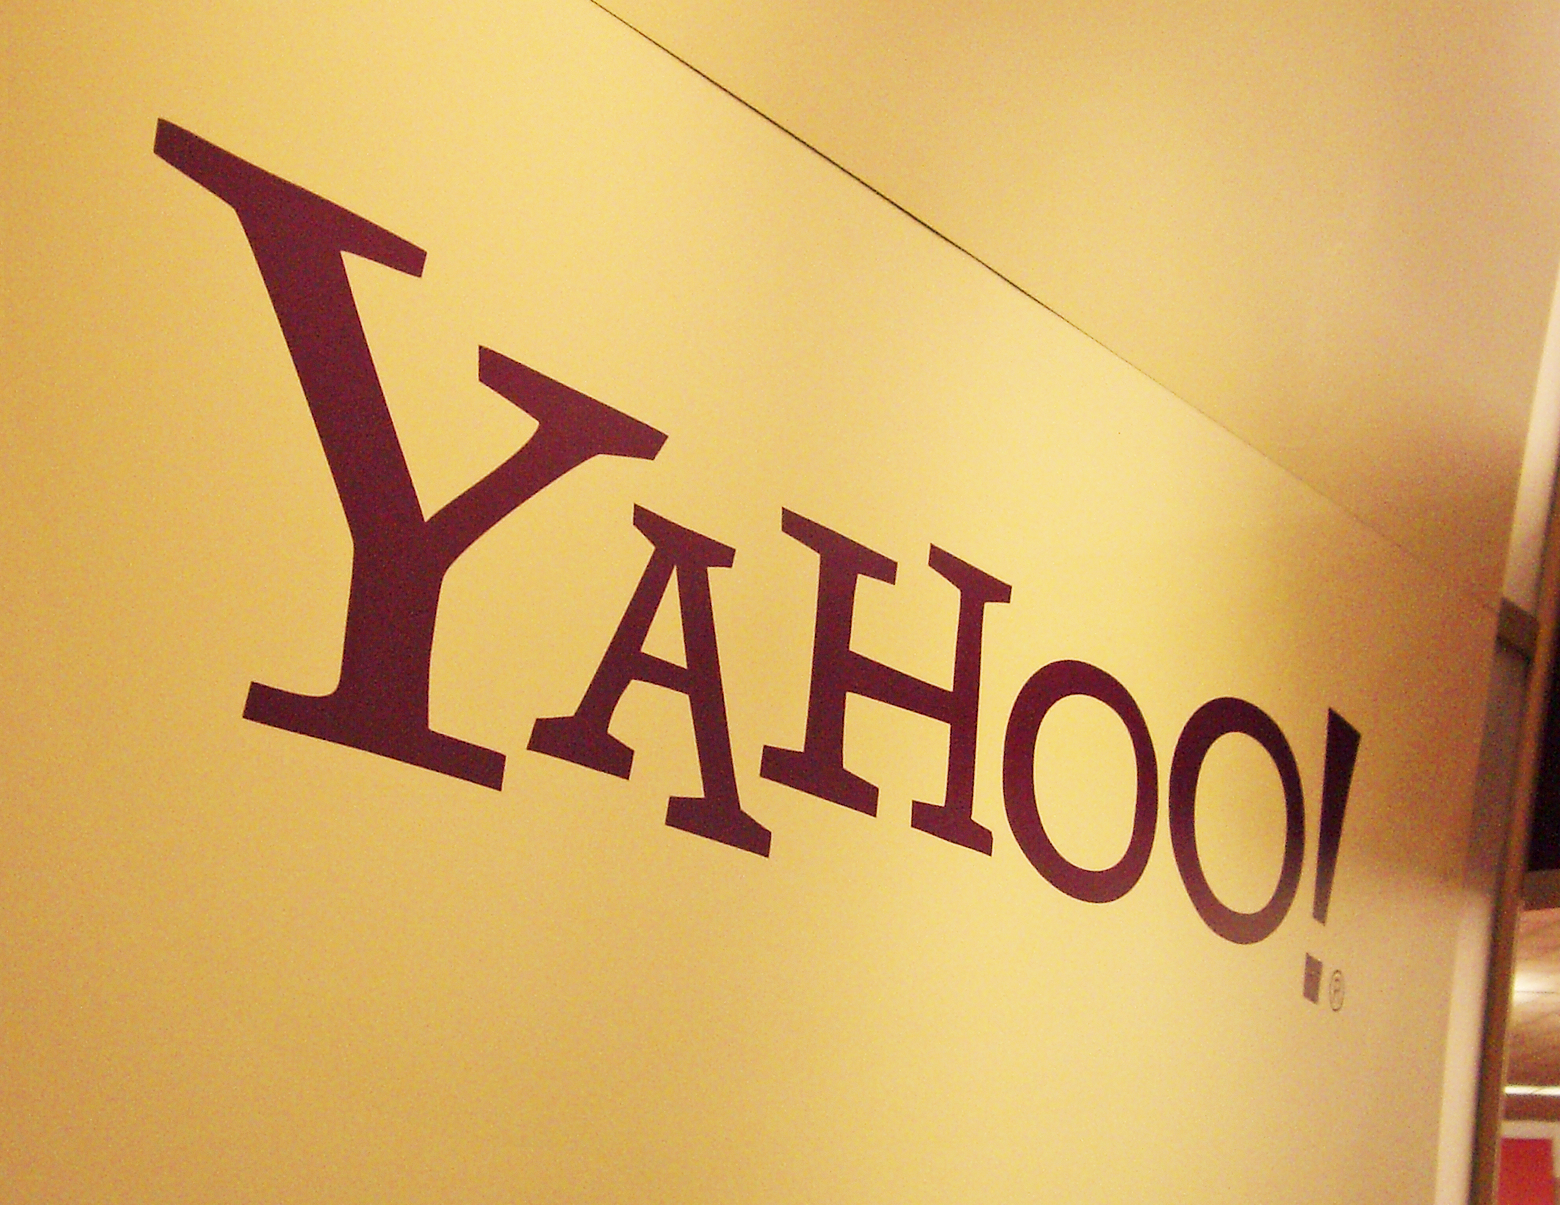 Mayer to Leave Yahoo Board After Sale to Verizon